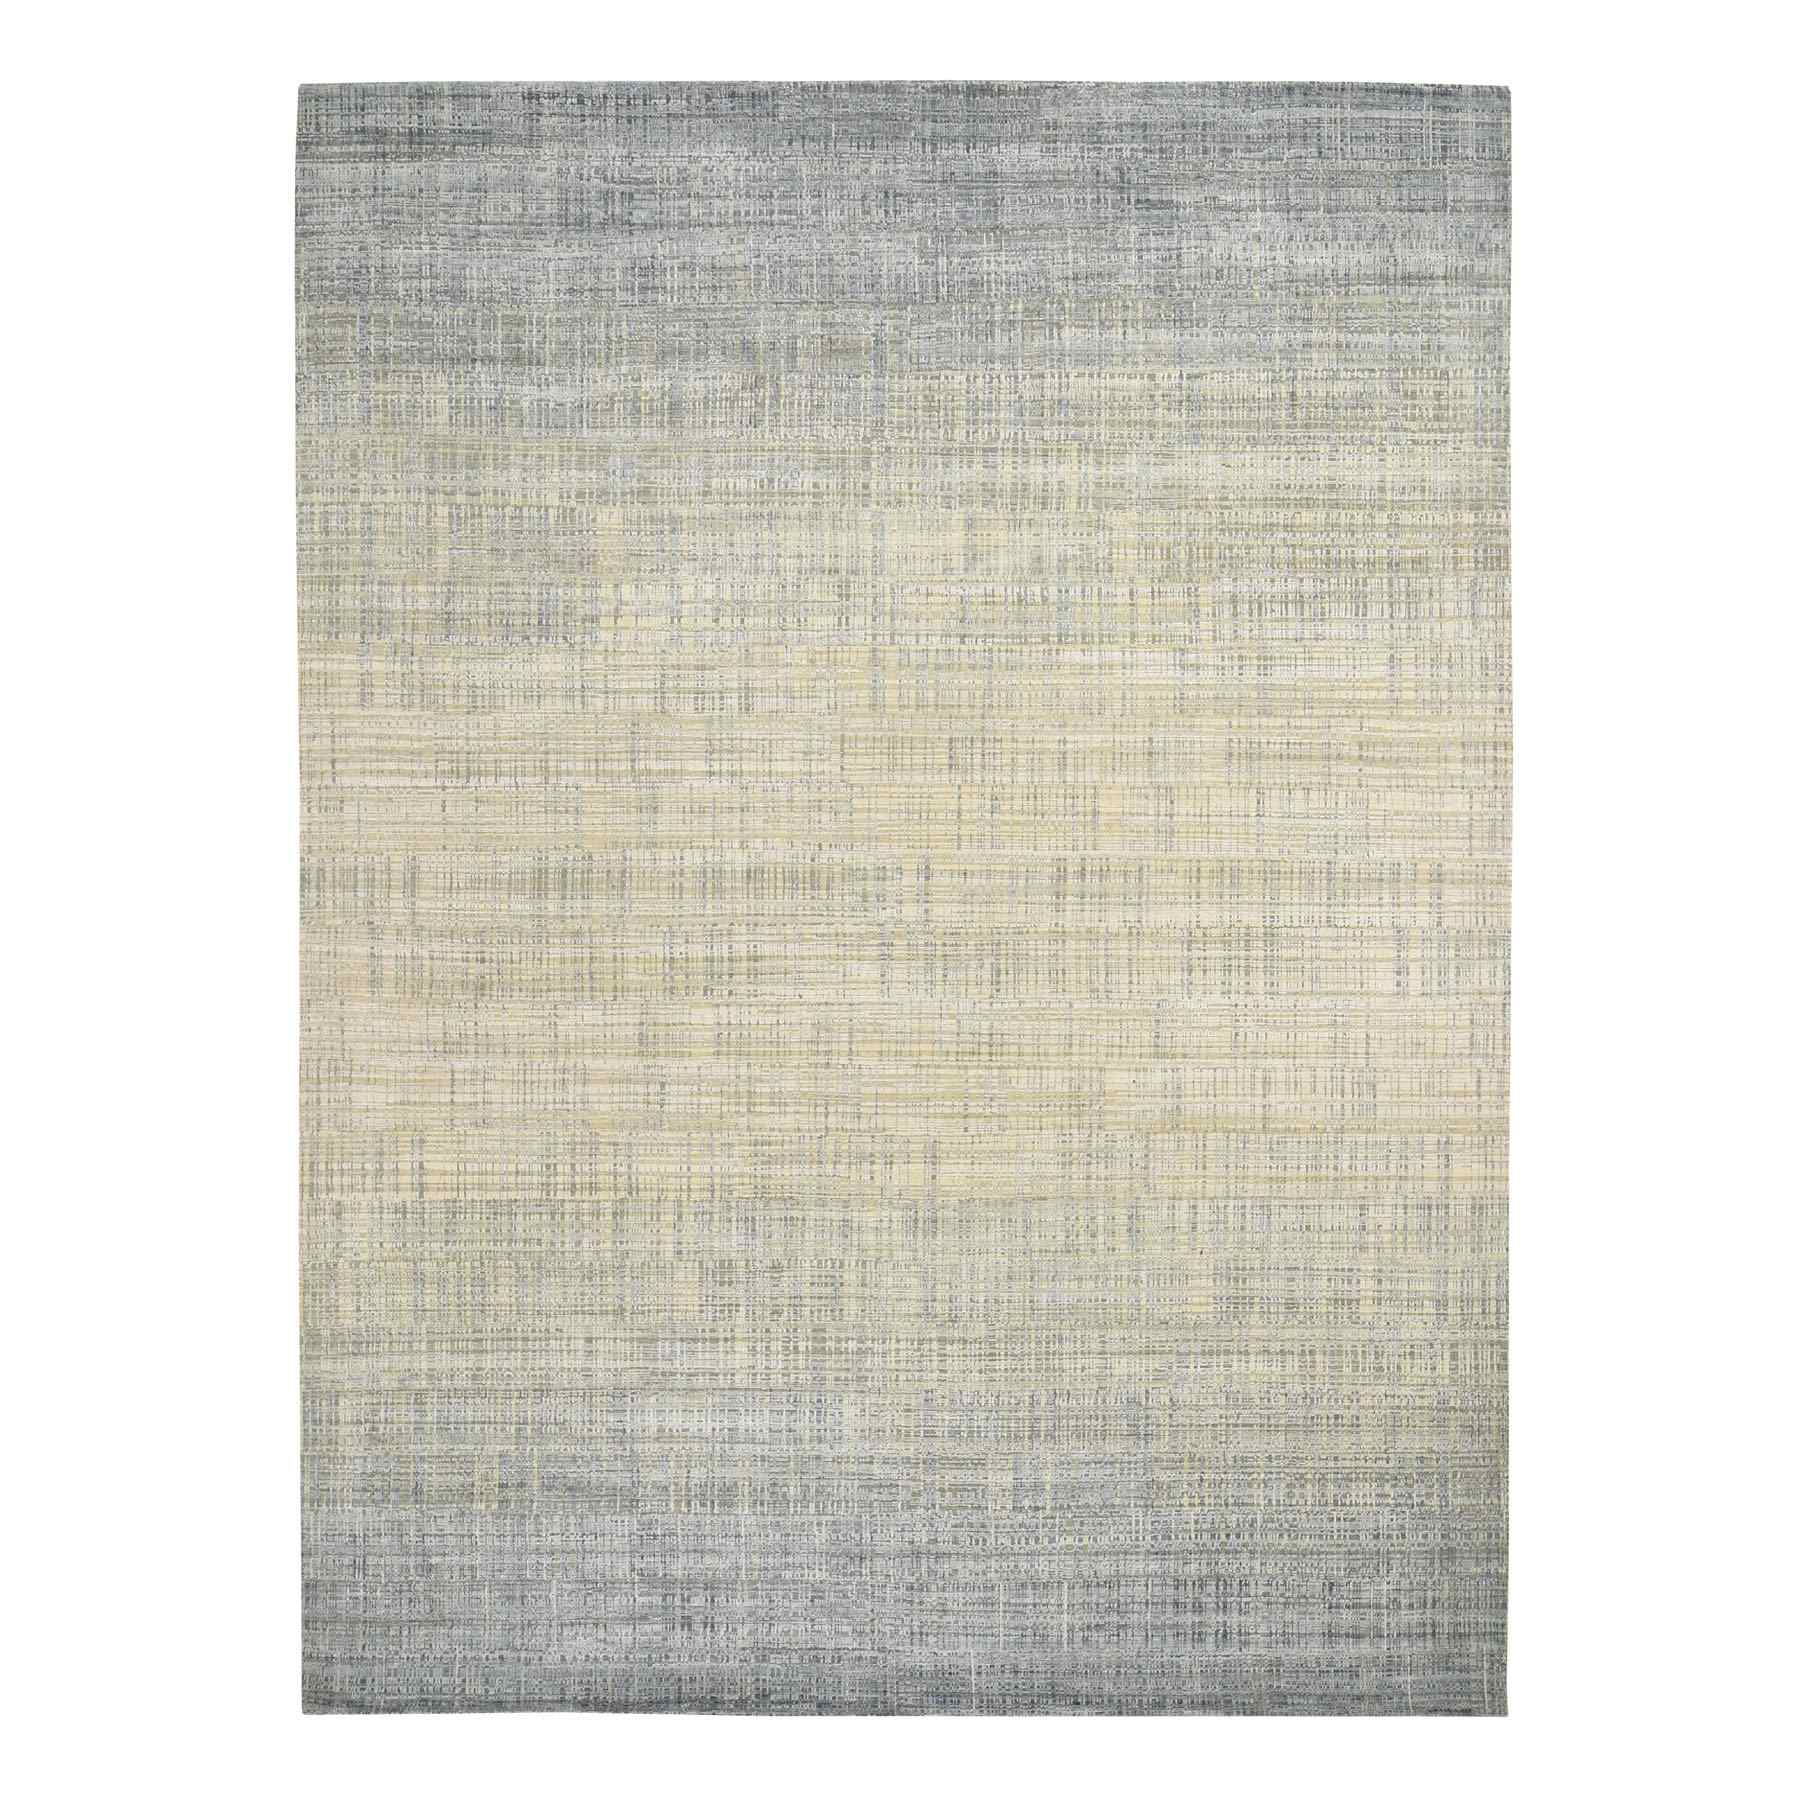 "8'10""x12'4"" Silk With Textured Wool Ombre Design Hand Woven Oriental Rug"